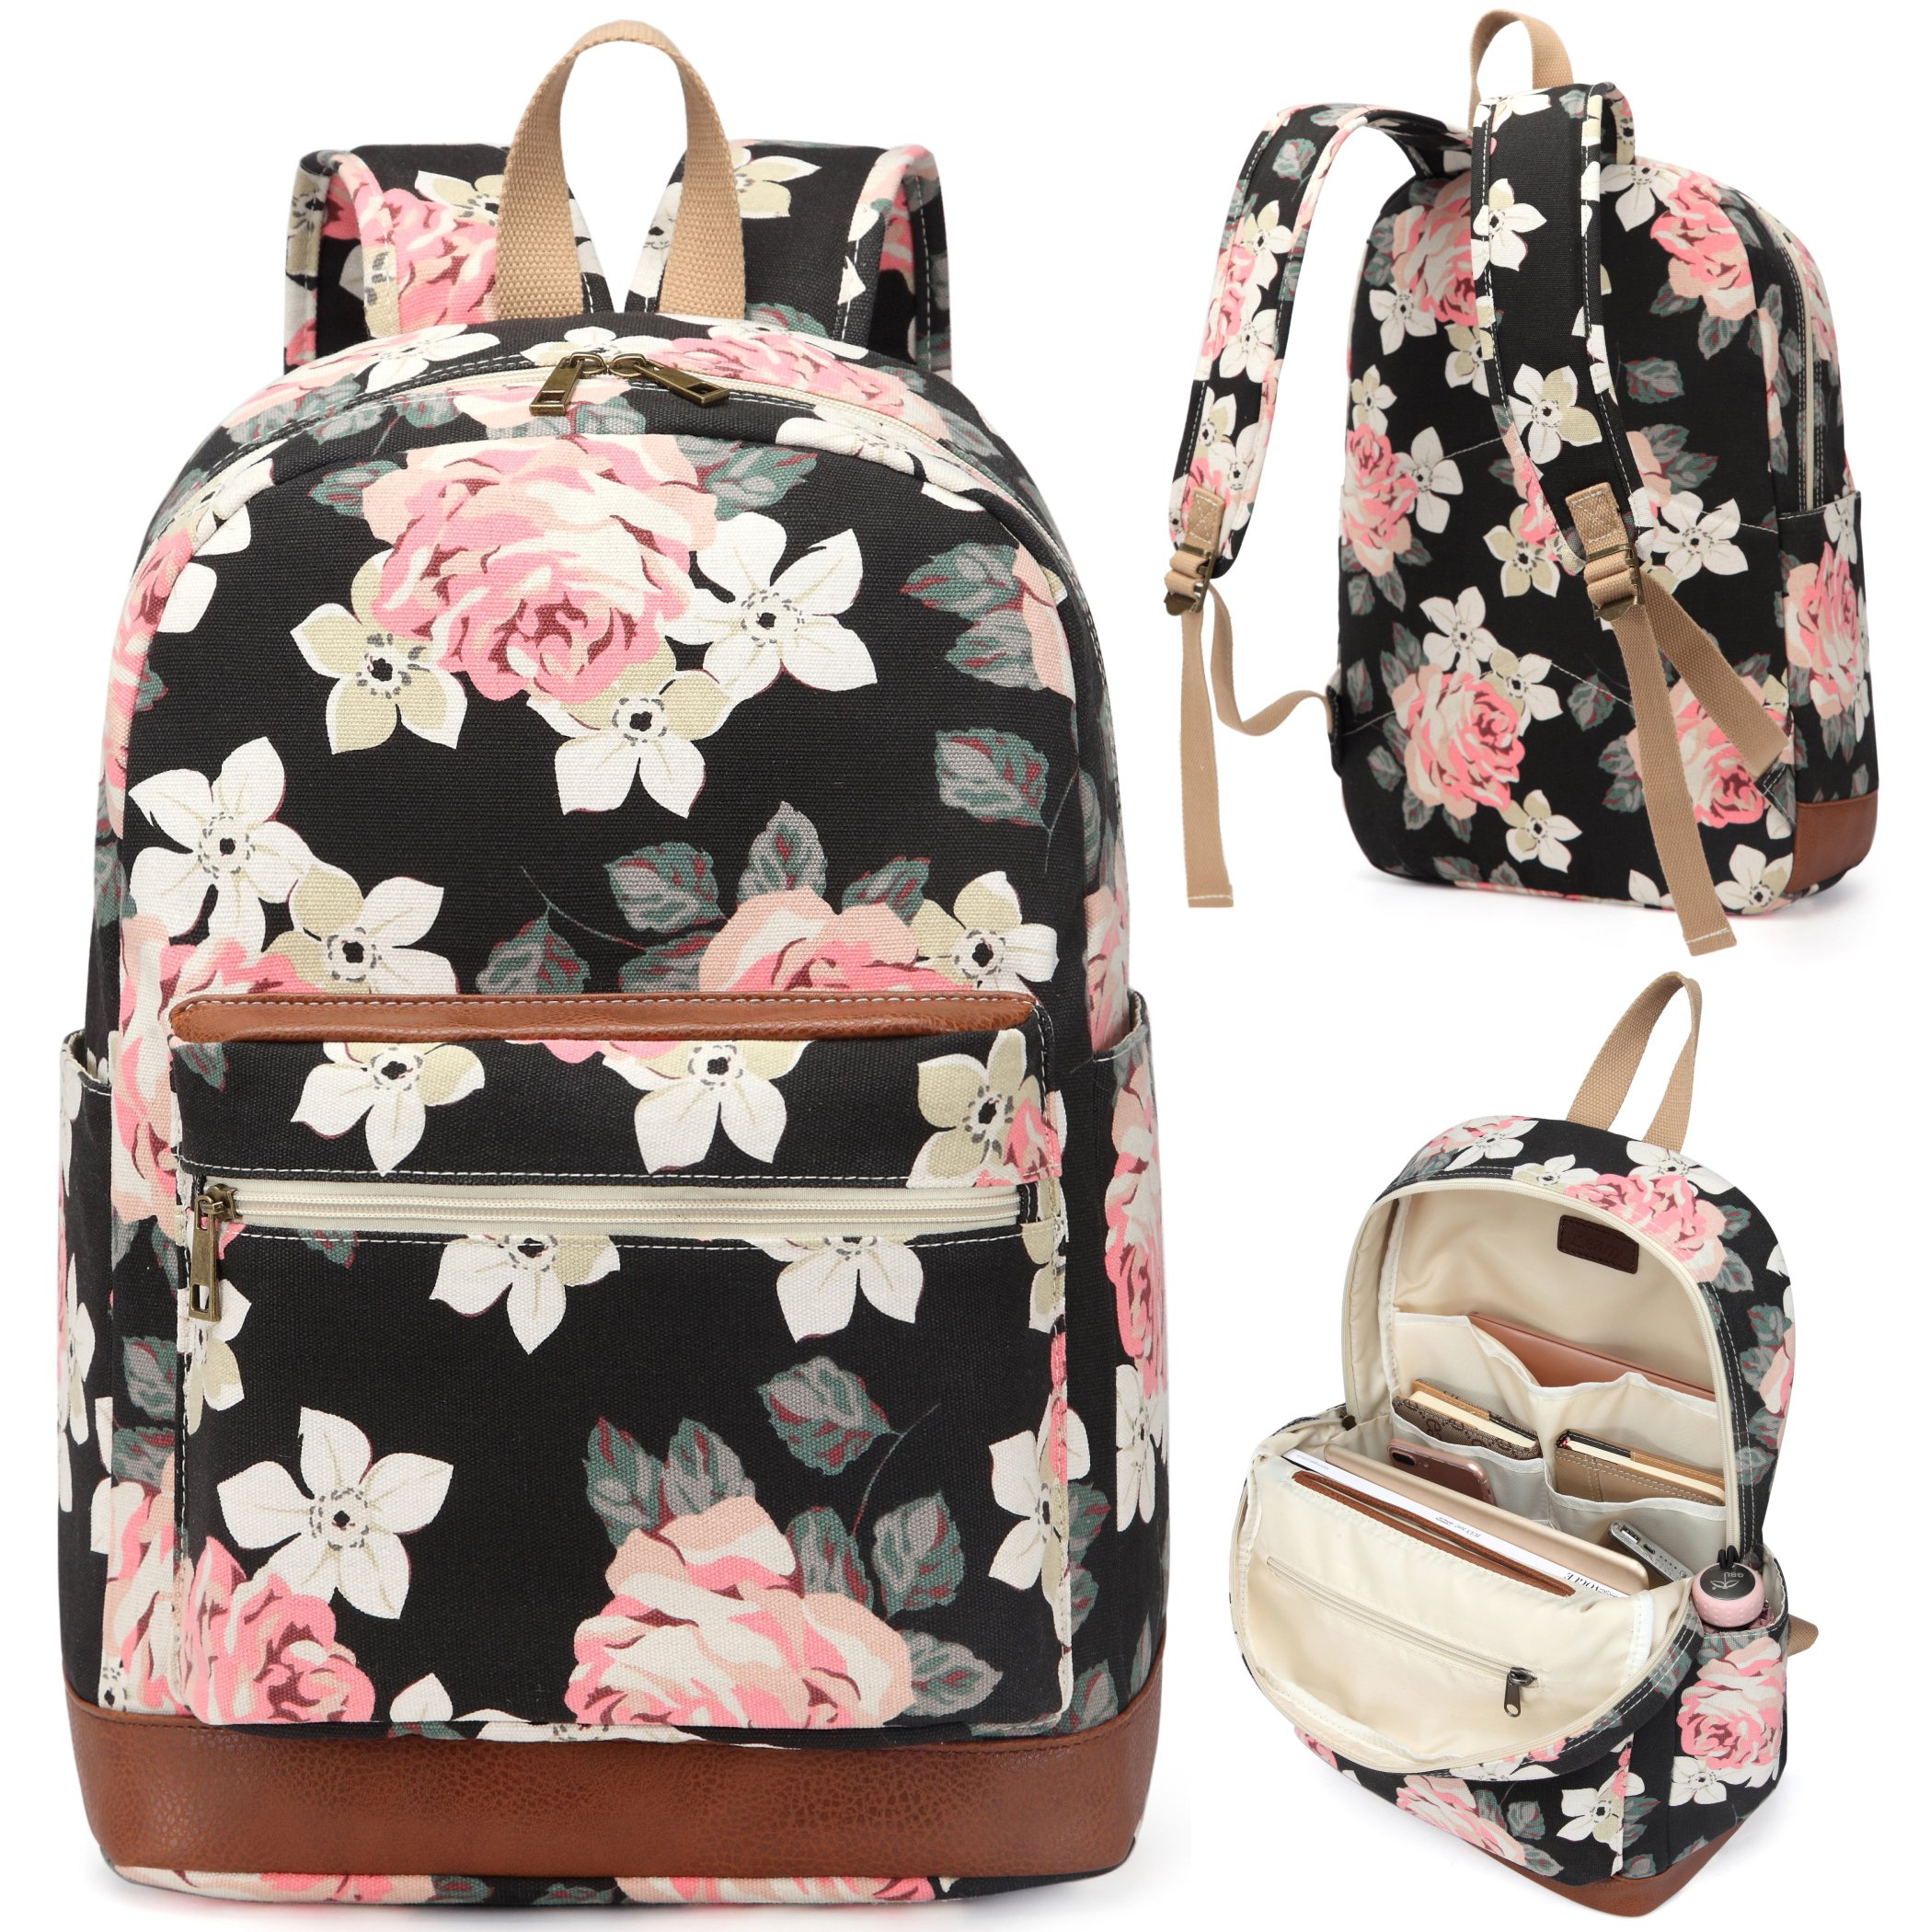 Kenox Girl's School Rucksack College Bookbag Lady Travel Backpack 14Inch Laptop Bag (Floral)